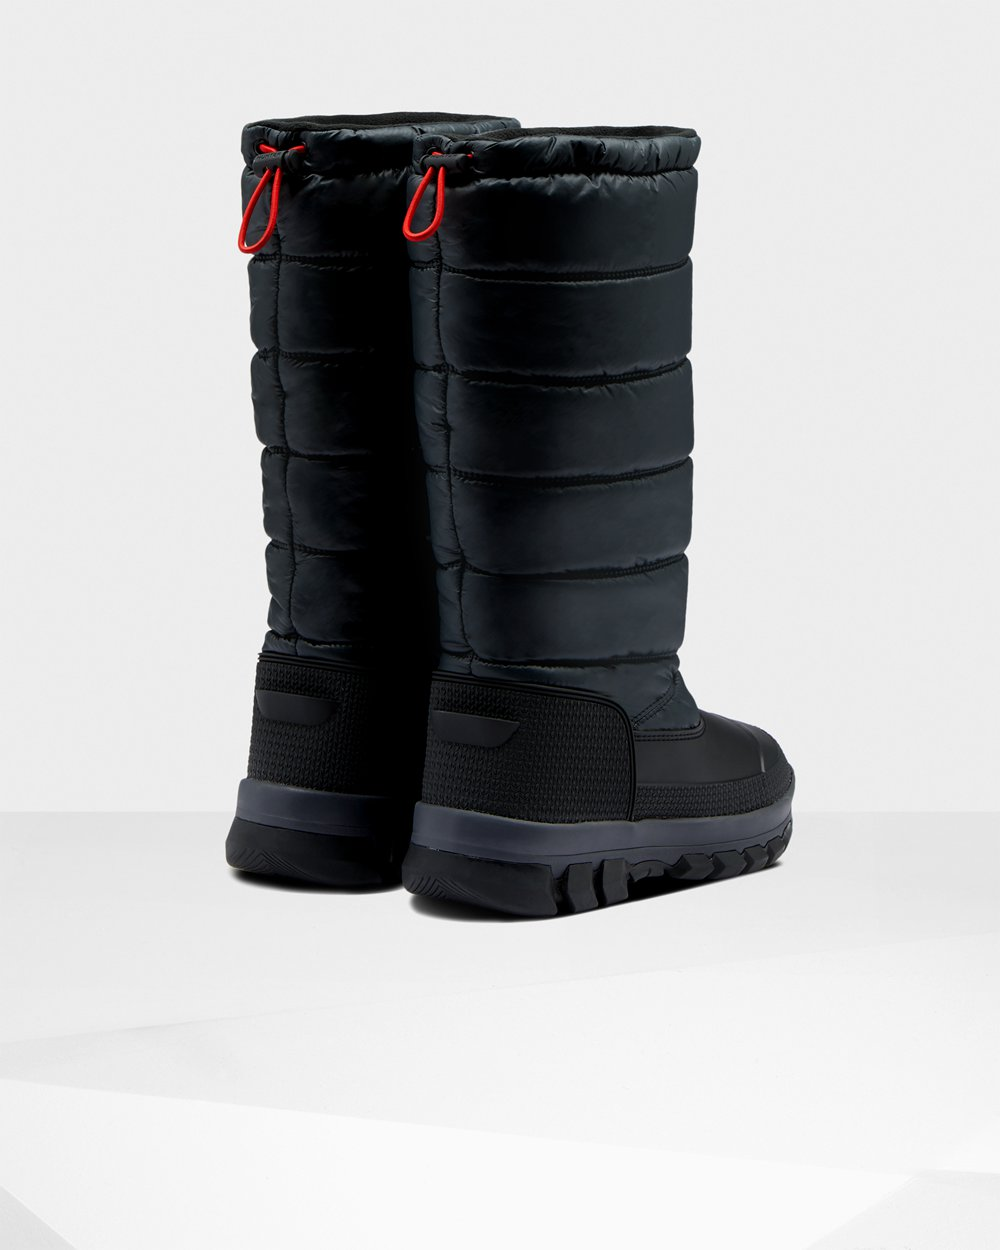 Hunter Original Insulated Tall For Women - Snow Boots Black Australia (YWA-059321)